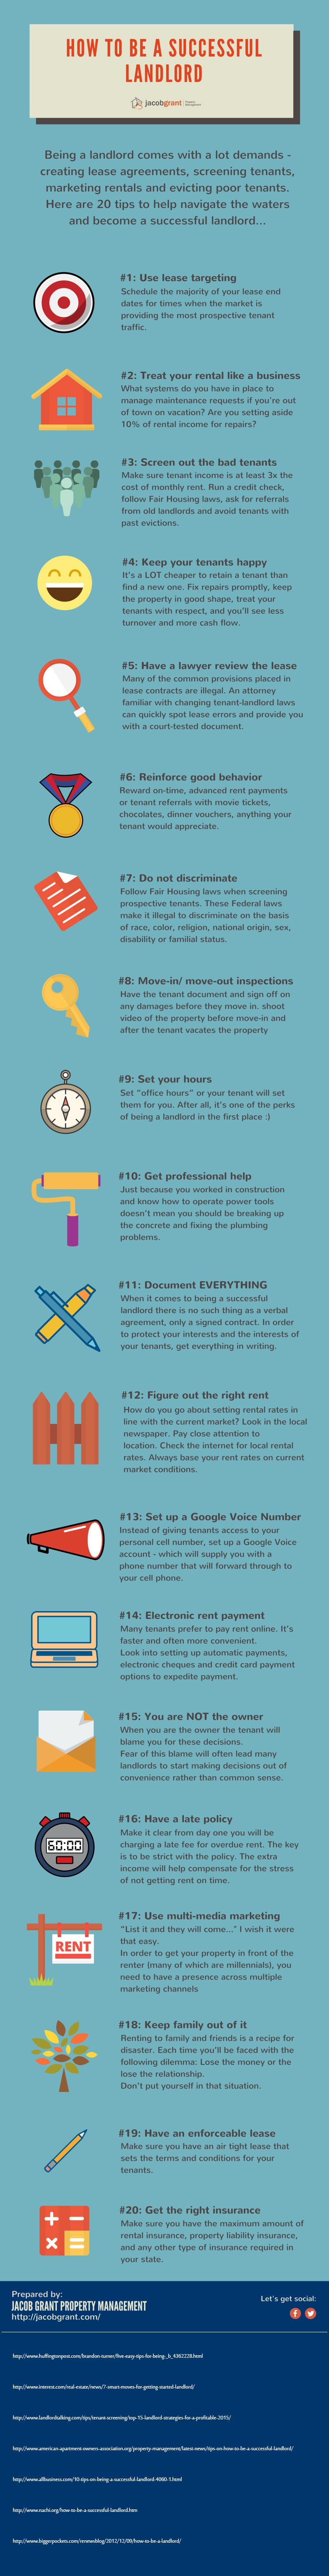 20 Tips To Be A Successful Landlord In 2015 Inman Being A Landlord Real Estate Rentals Real Estate Investing Rental Property